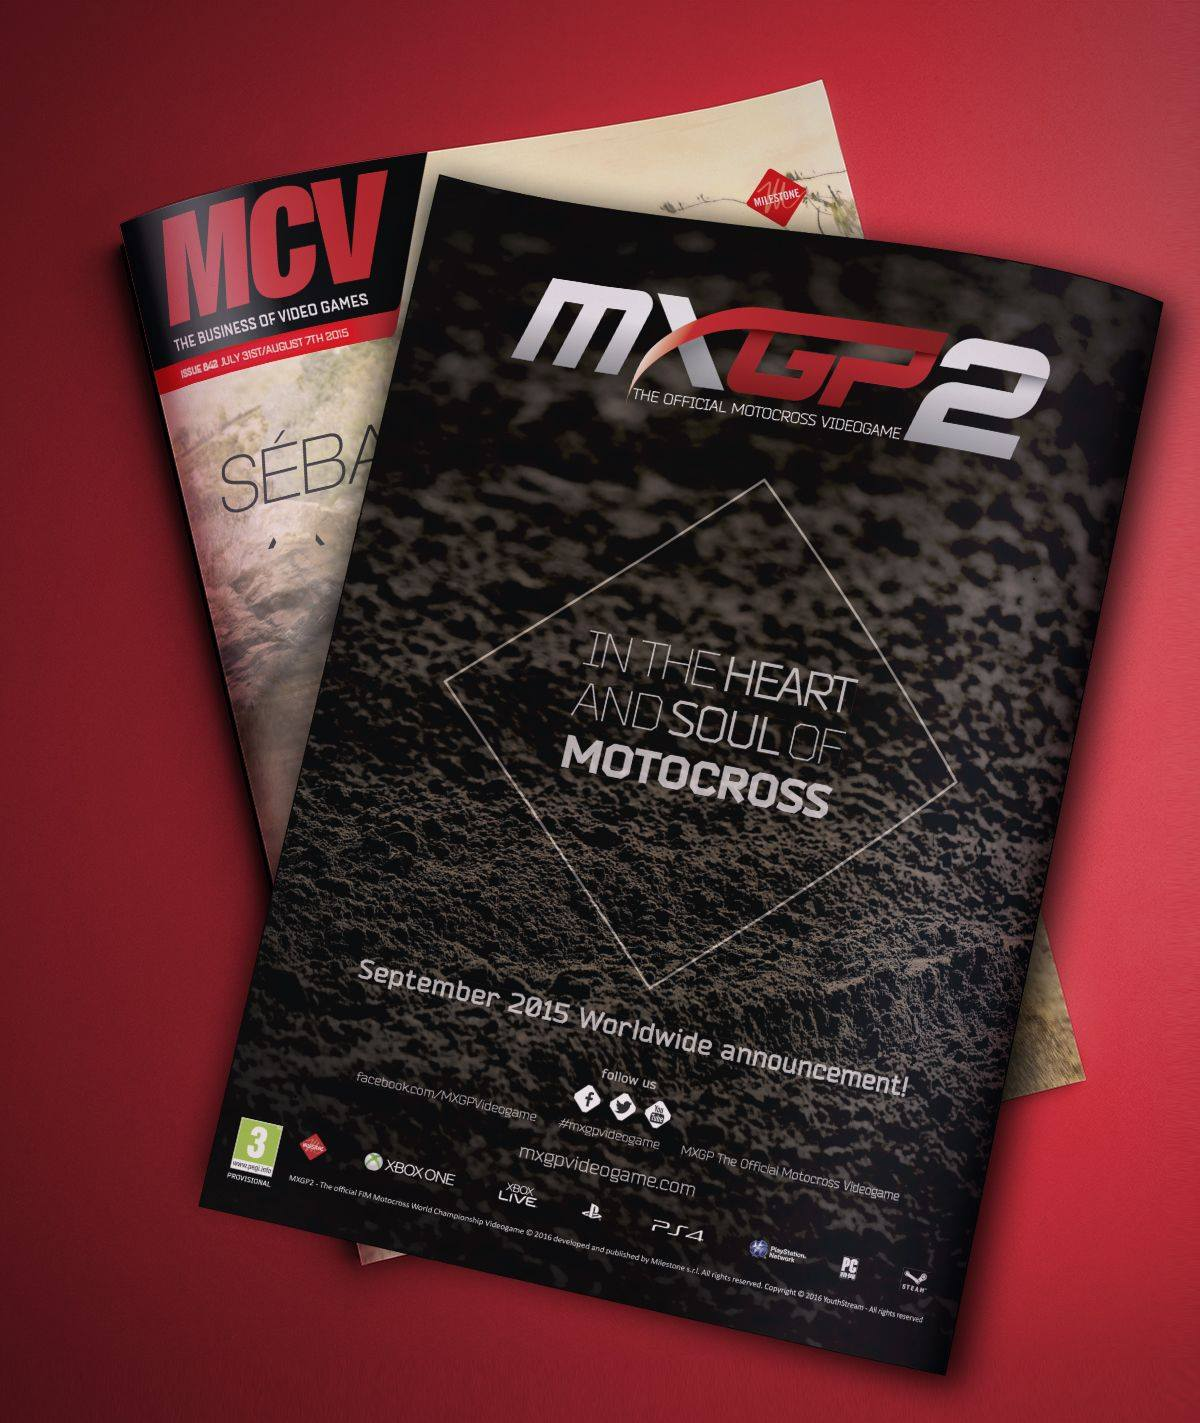 MXGP 2 to be announced in September